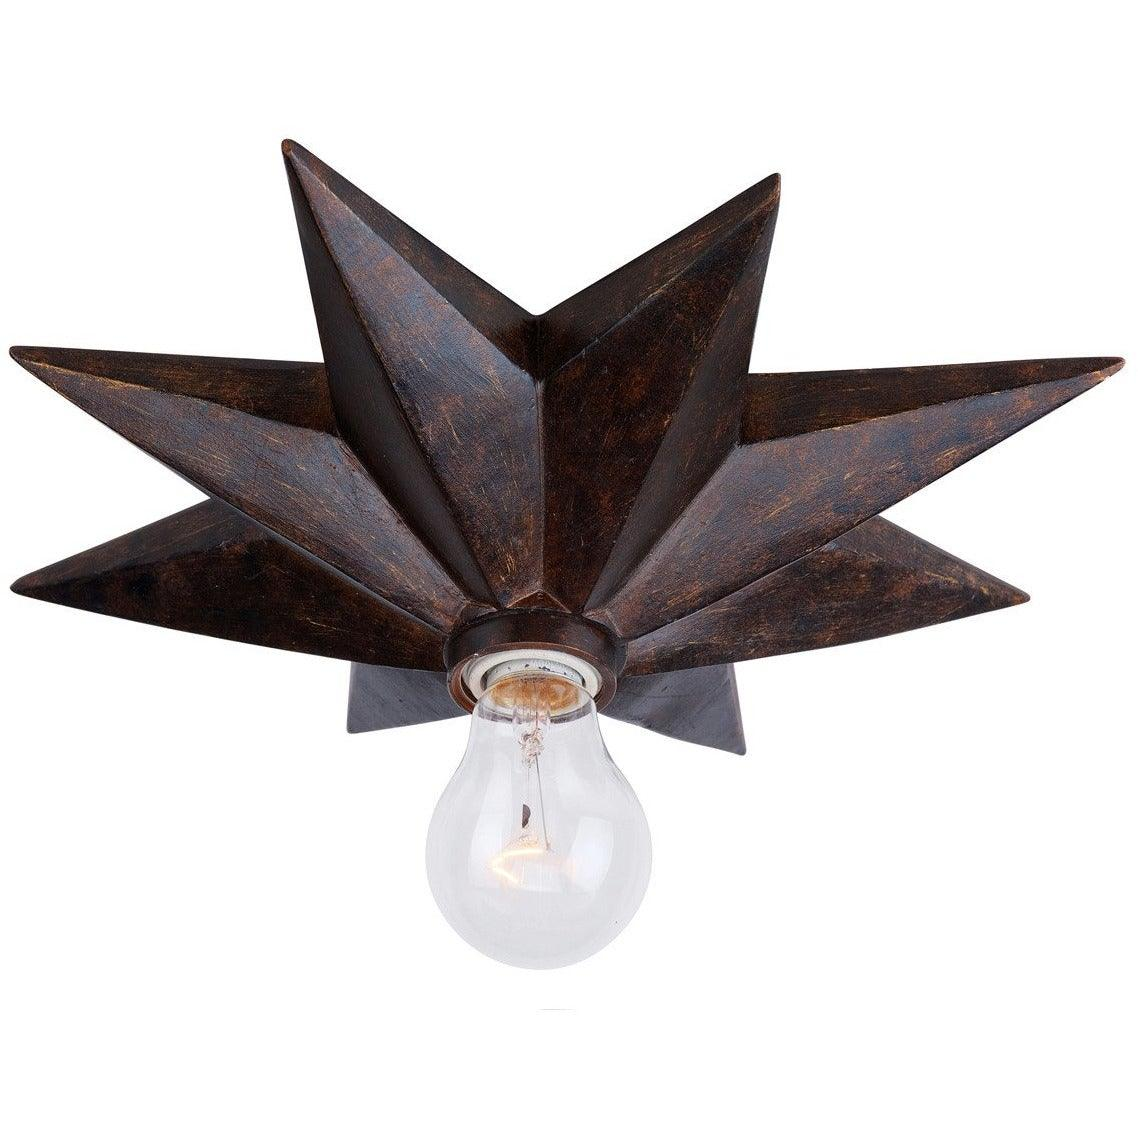 Crystorama - 9230-EB_CEILING - One Light Ceiling Mount - Astro - English Bronze